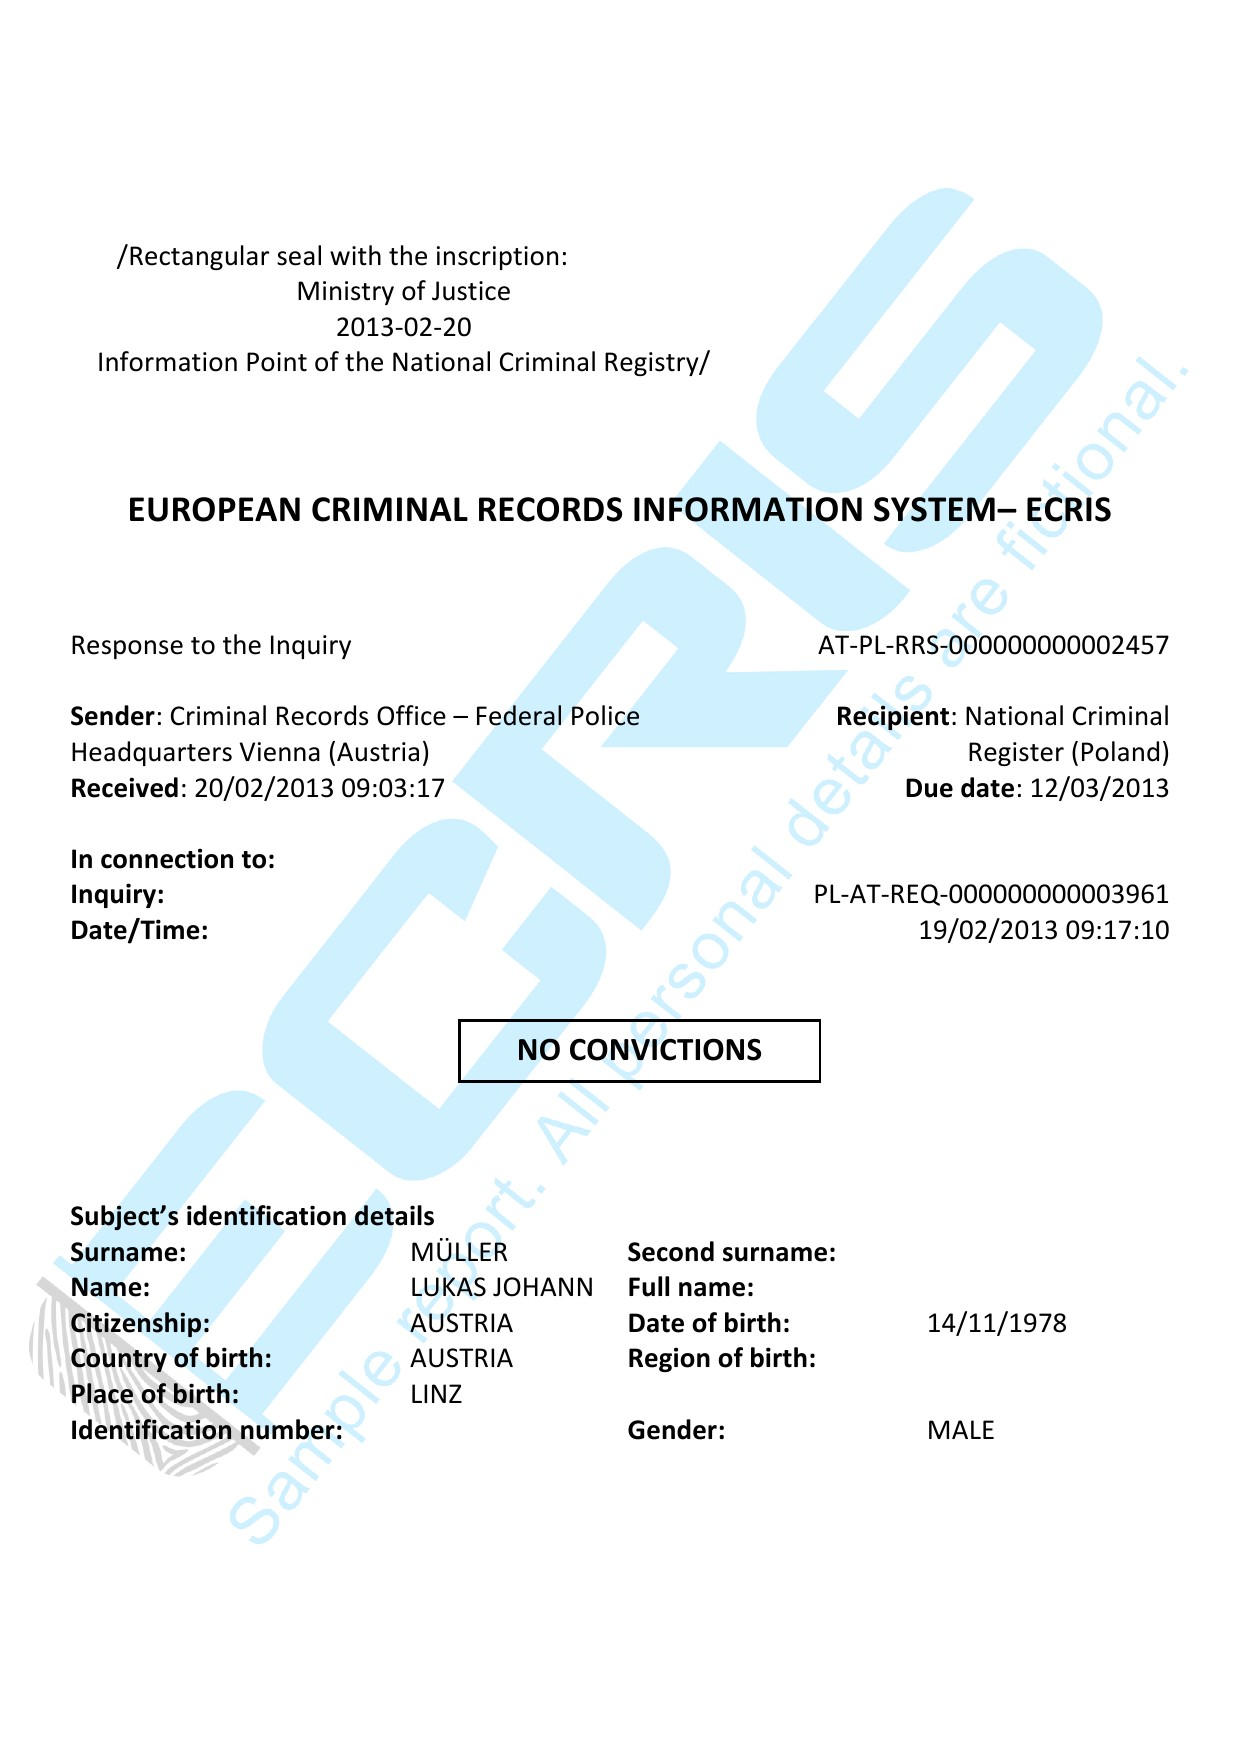 austrian criminal record check from federal police bureau